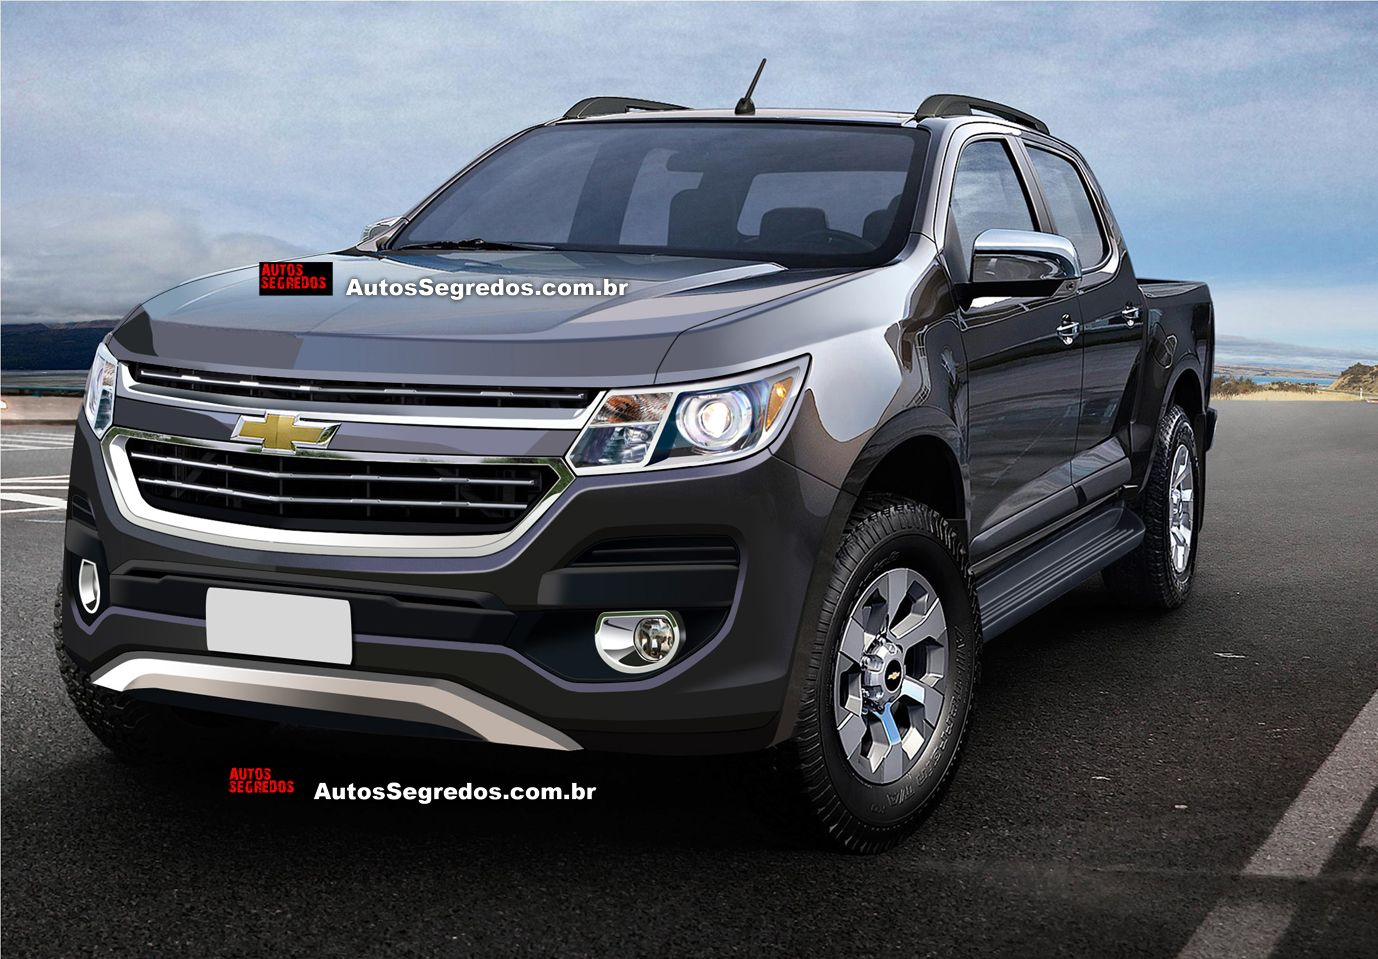 2017 Chevy S10 >> 2017 Chevrolet S10 2017 Chevrolet Colorado Rendering Cars